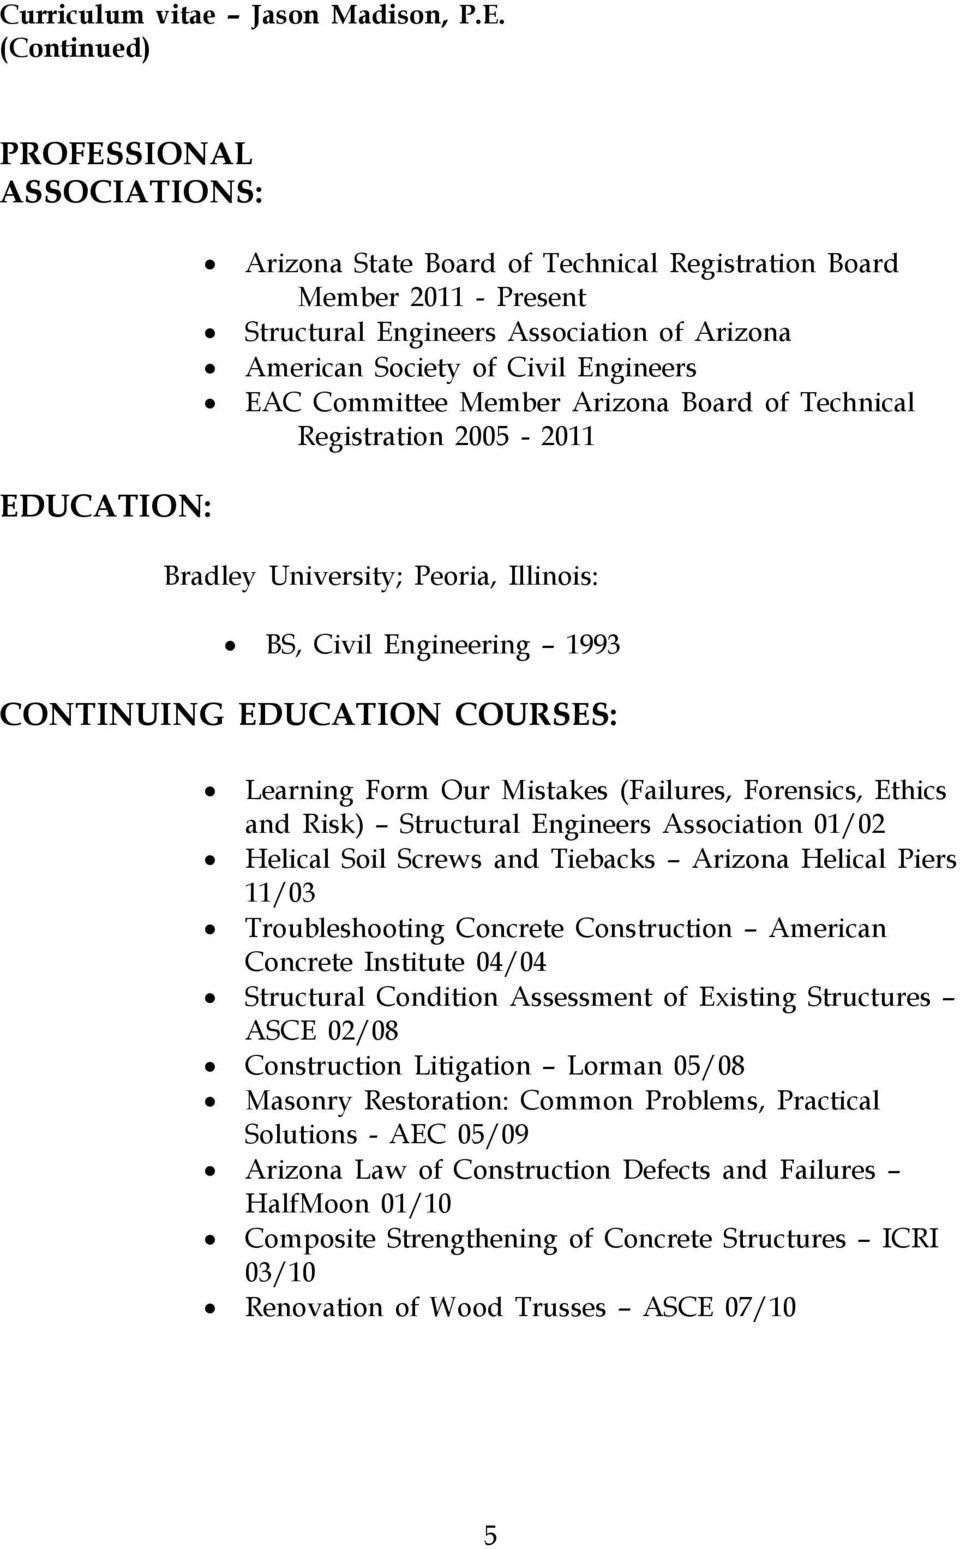 Ethics and Risk) Structural Engineers Association 01/02 Helical Soil Screws and Tiebacks Arizona Helical Piers 11/03 Troubleshooting Concrete Construction American Concrete Institute 04/04 Structural